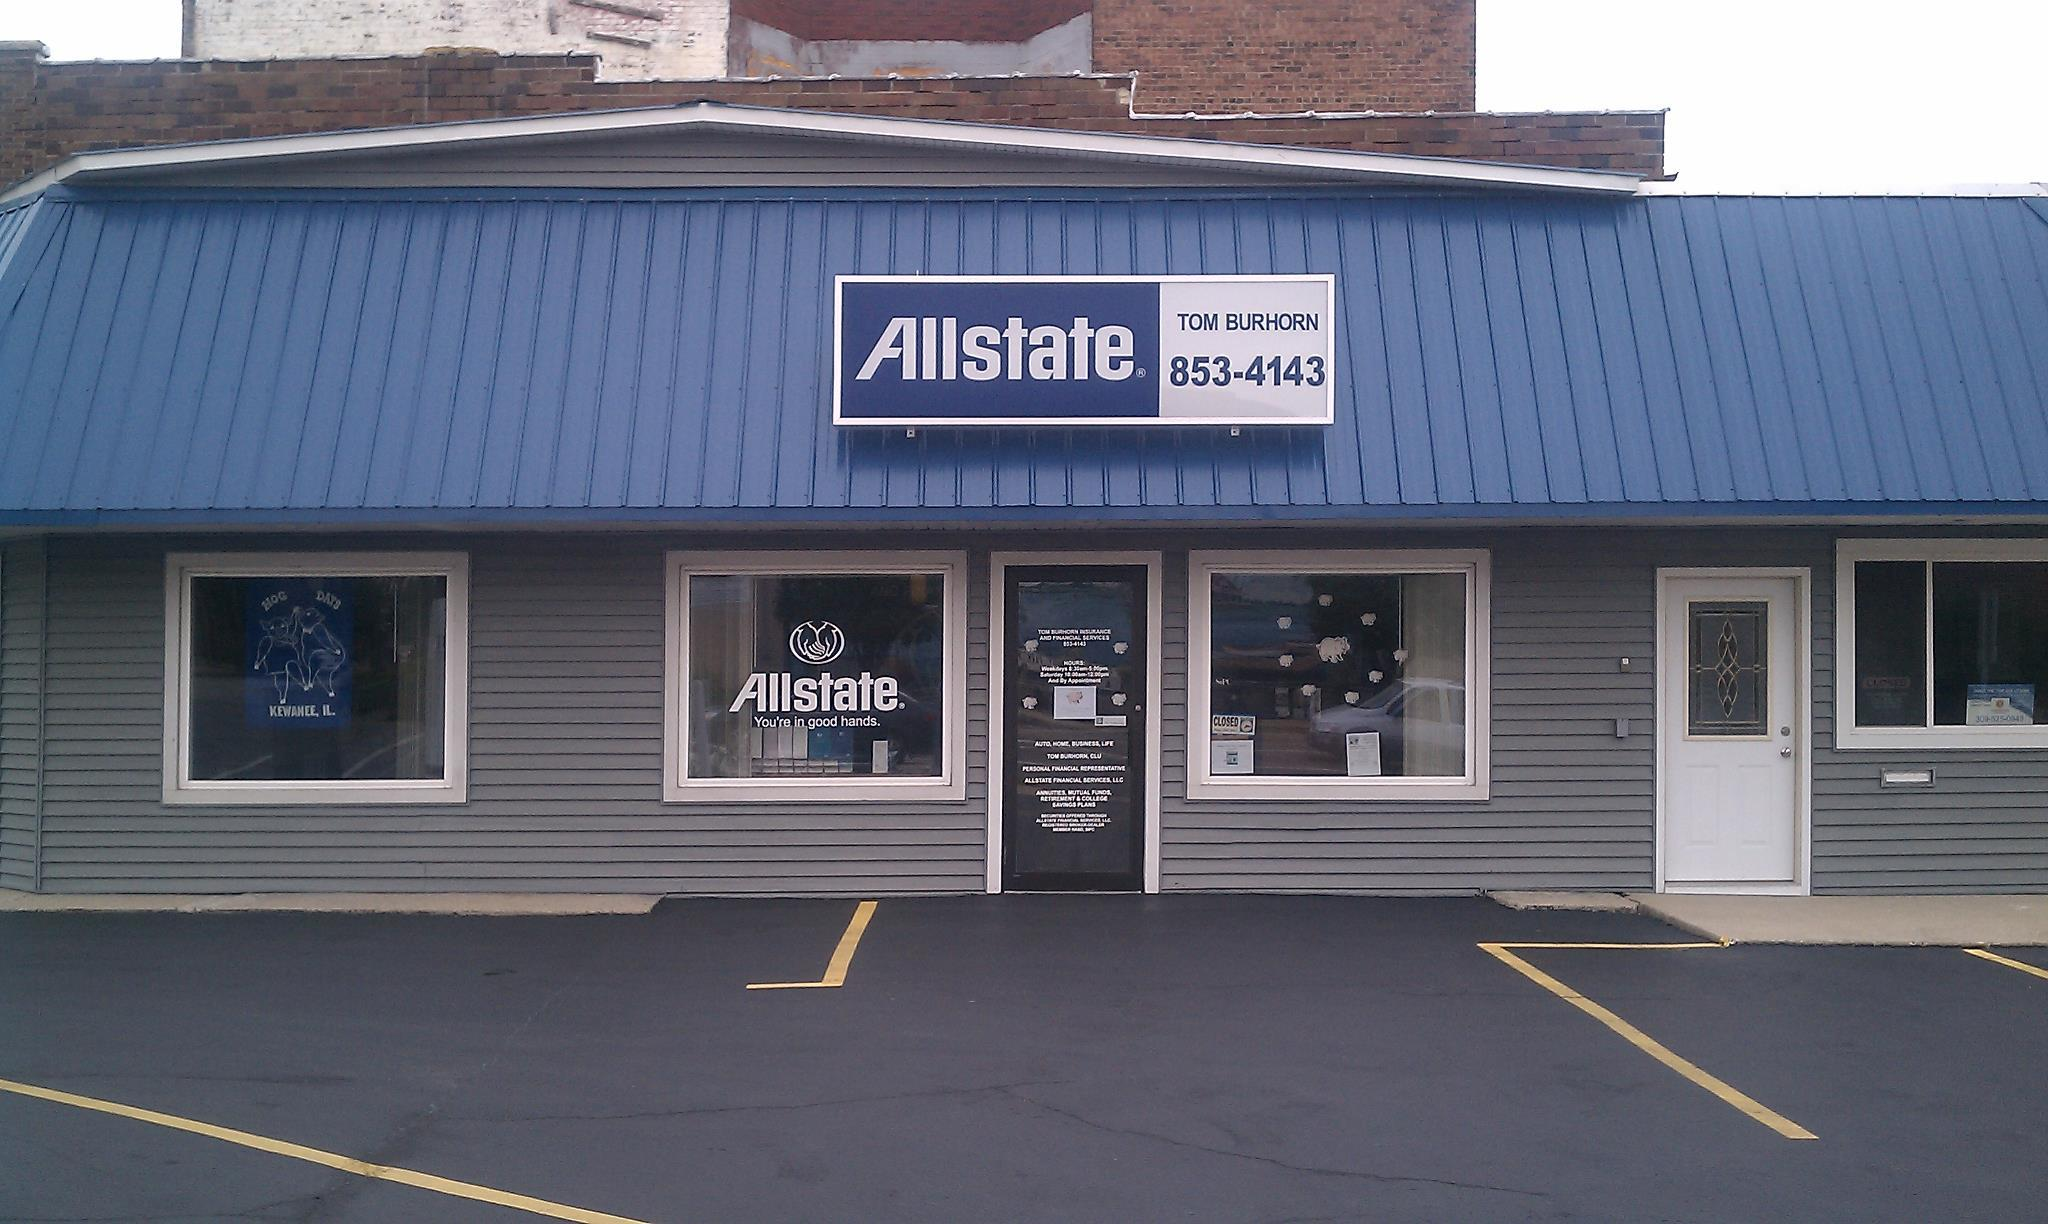 Allstate Insurance Agent: Thomas Burhorn image 1